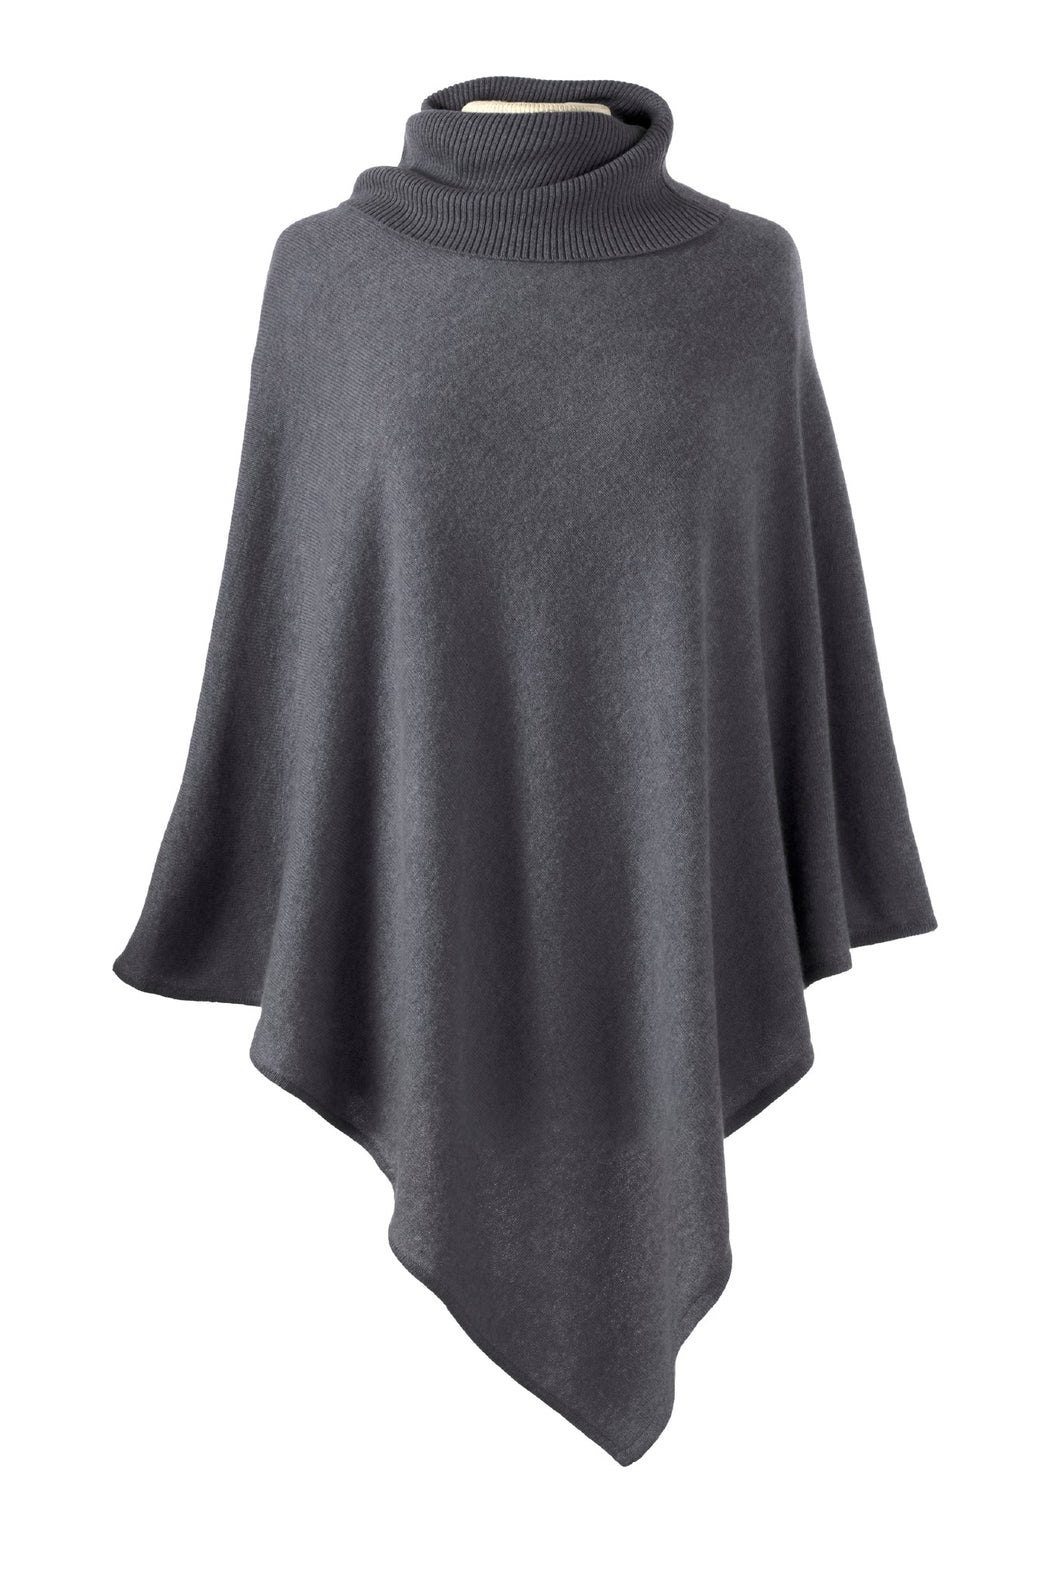 Turtleneck Cashmere Cape (CURRENTLY OUT OF STOCK)